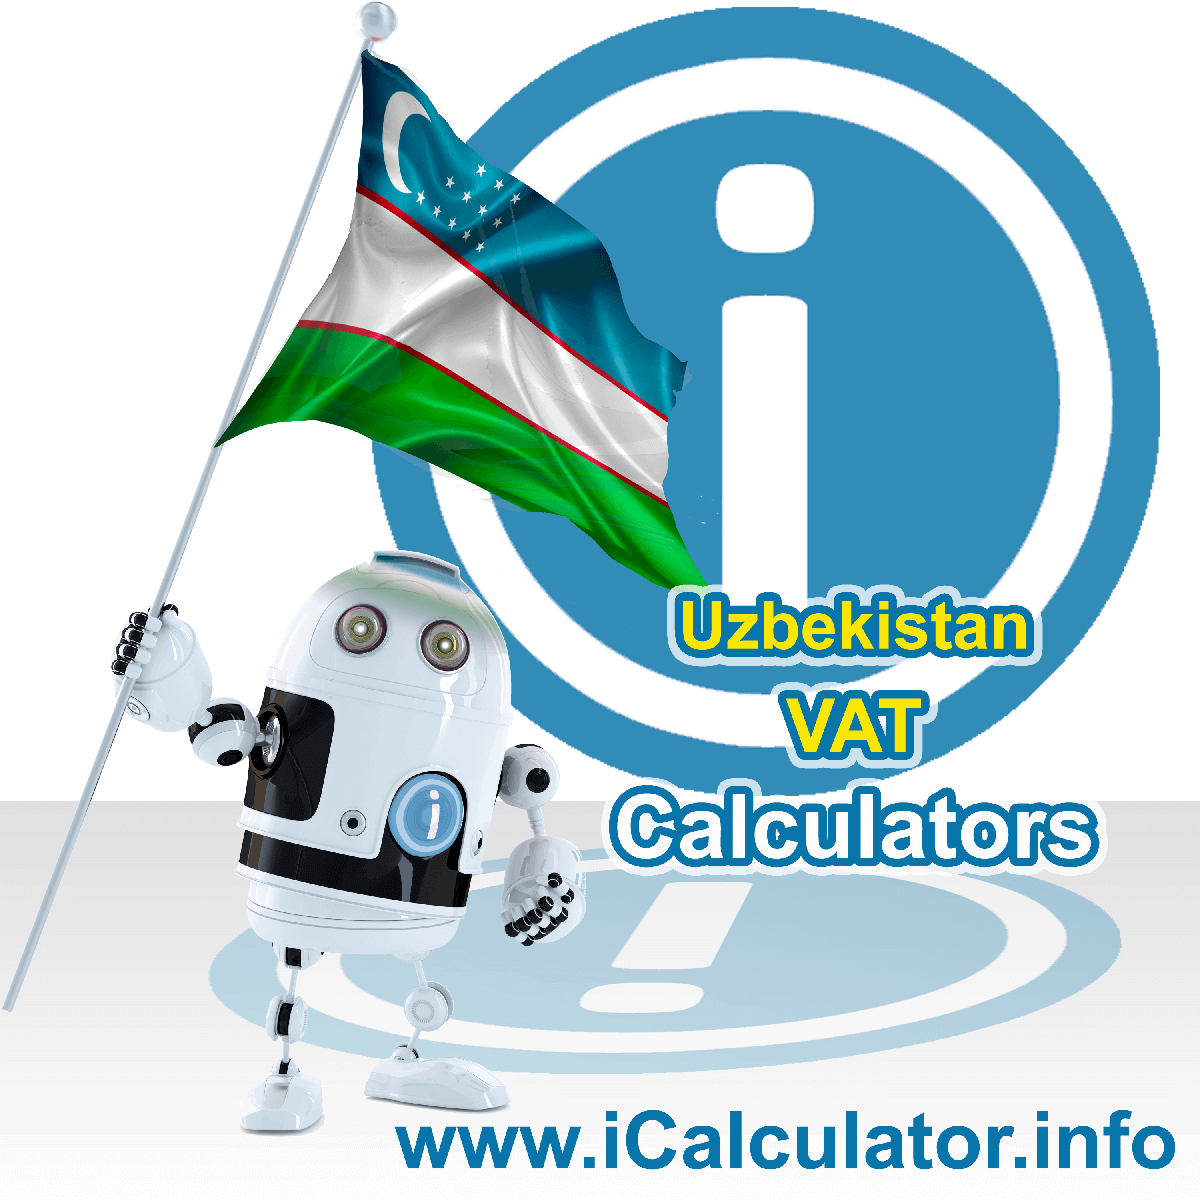 Uzbekistan VAT Calculator. This image shows the Uzbekistan flag and information relating to the VAT formula used for calculating Value Added Tax in Uzbekistan using the Uzbekistan VAT Calculator in 2020